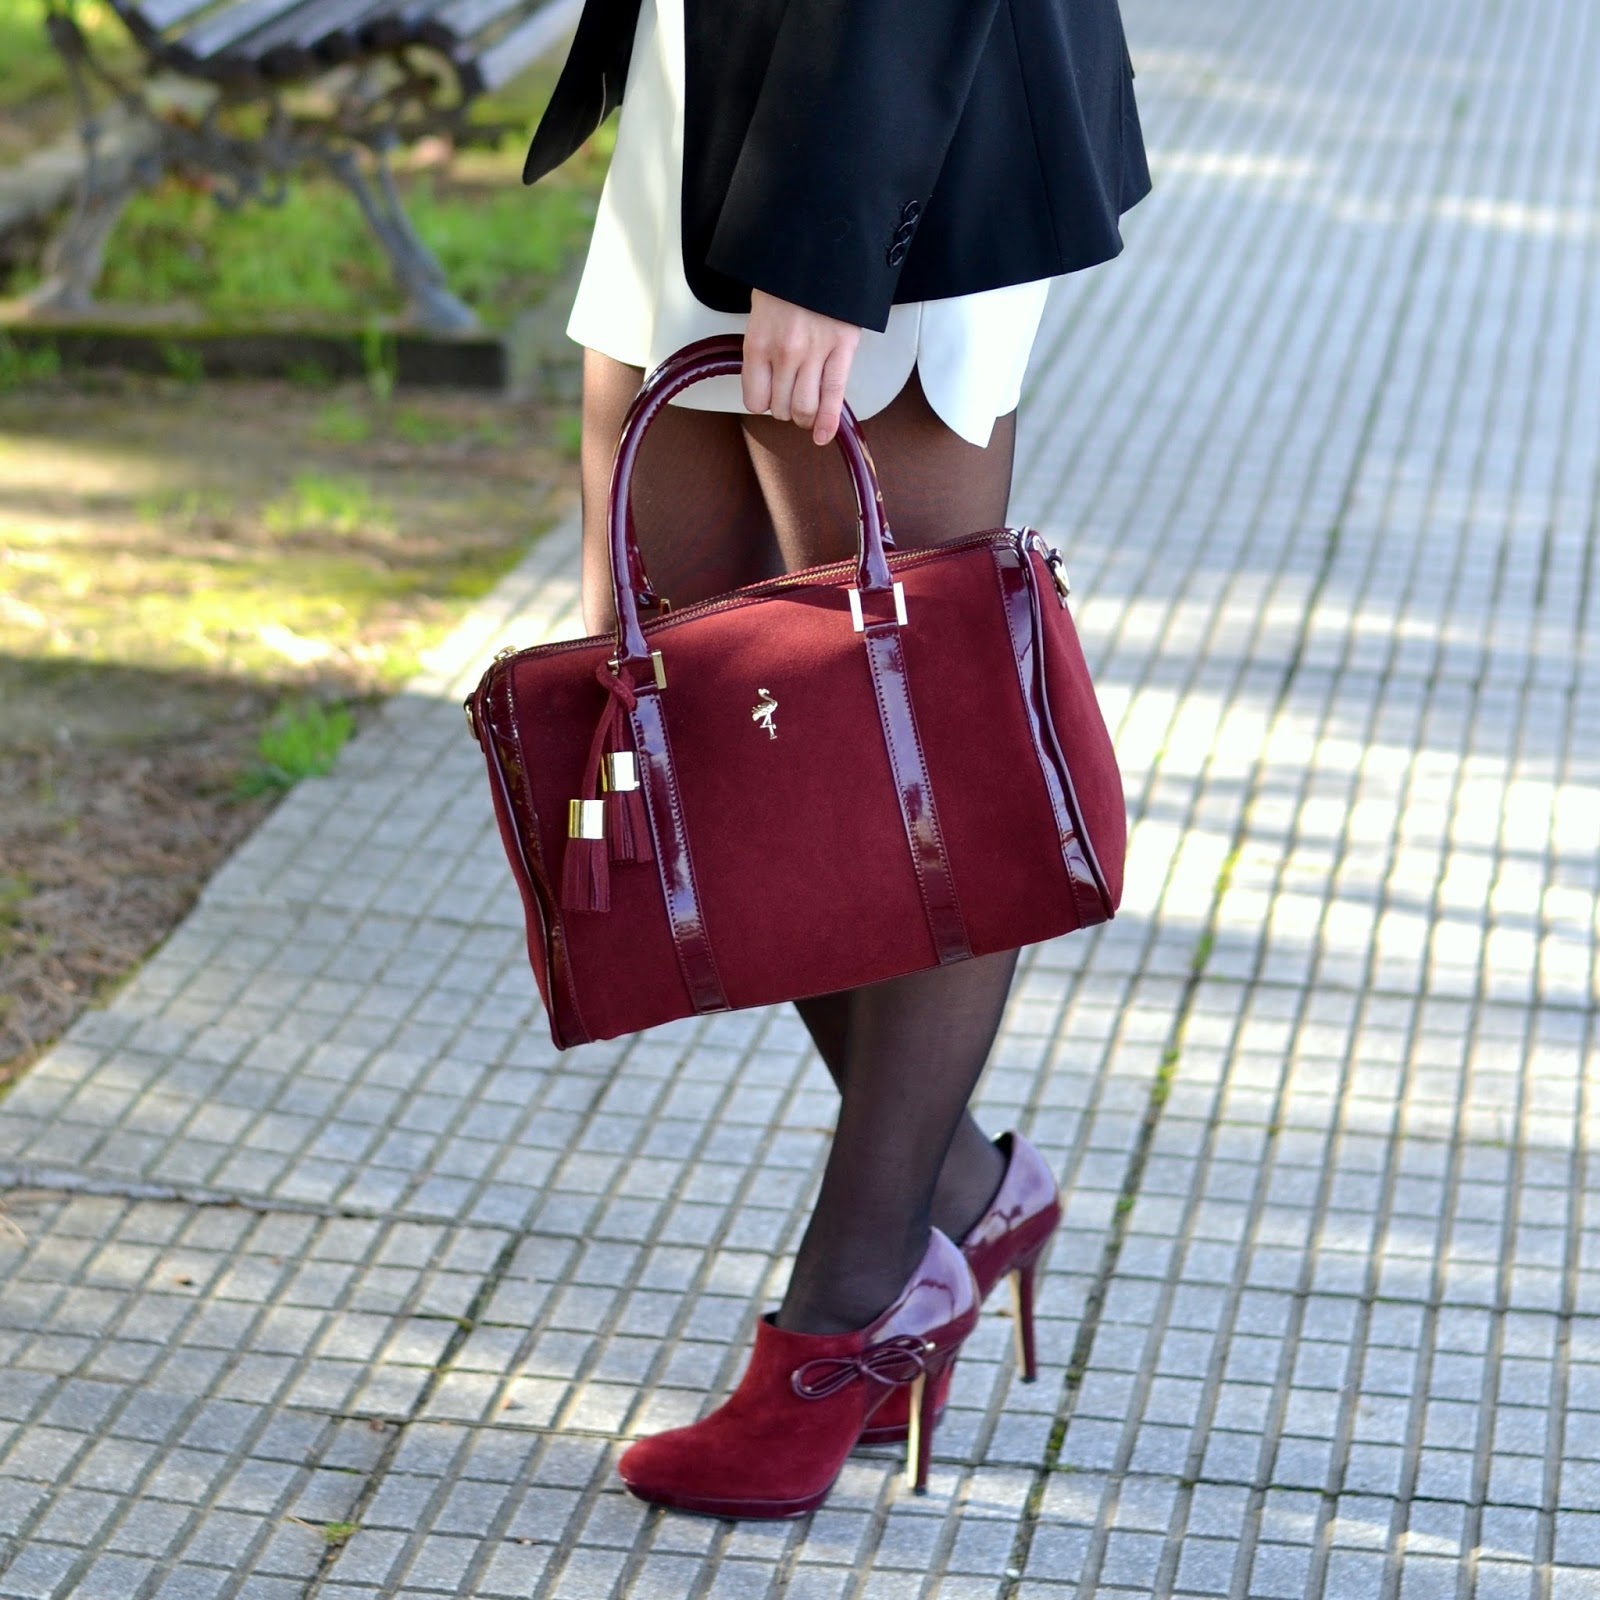 Menbur burgundy heels and bag